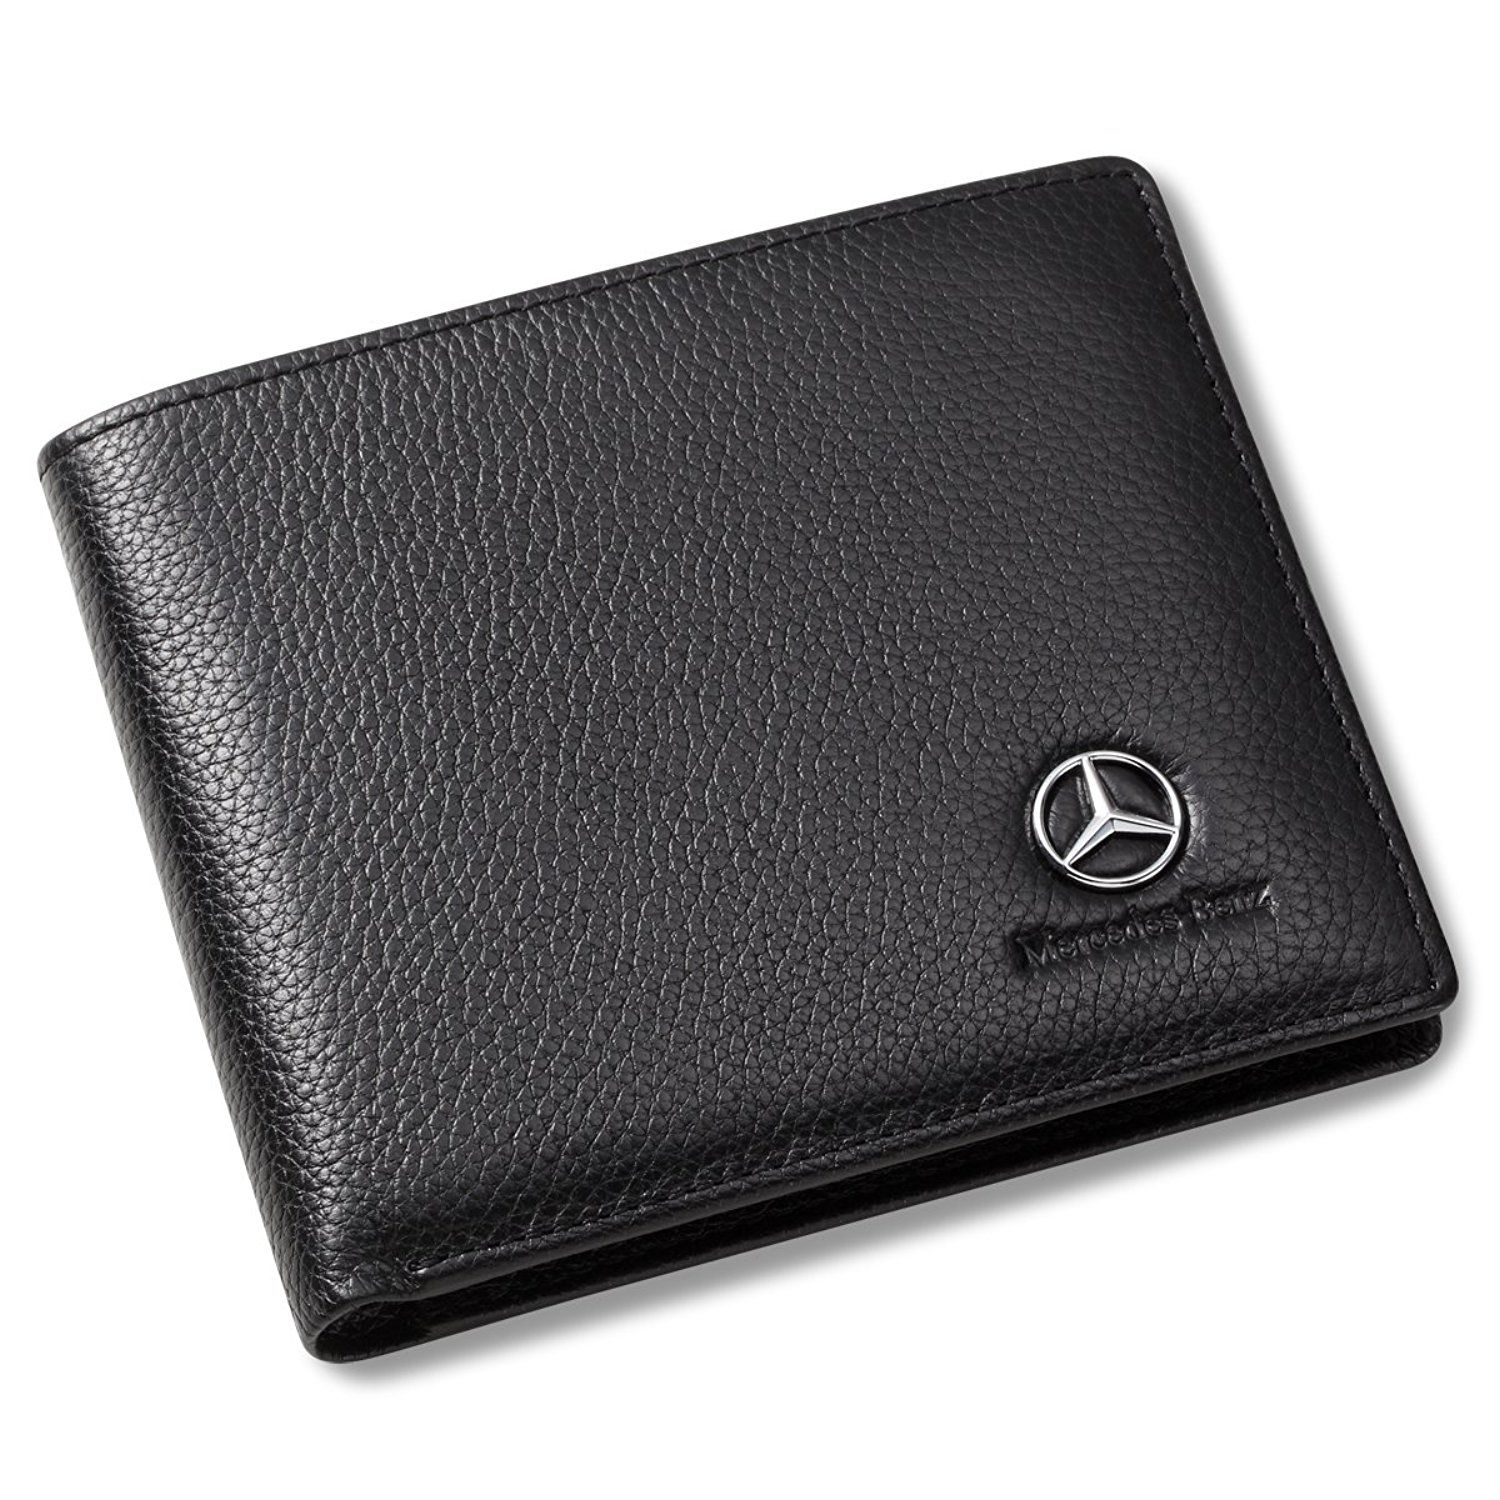 s dp leather clothing wallet amg black benz slim mercedes men store credit with genuine slots amazon at card